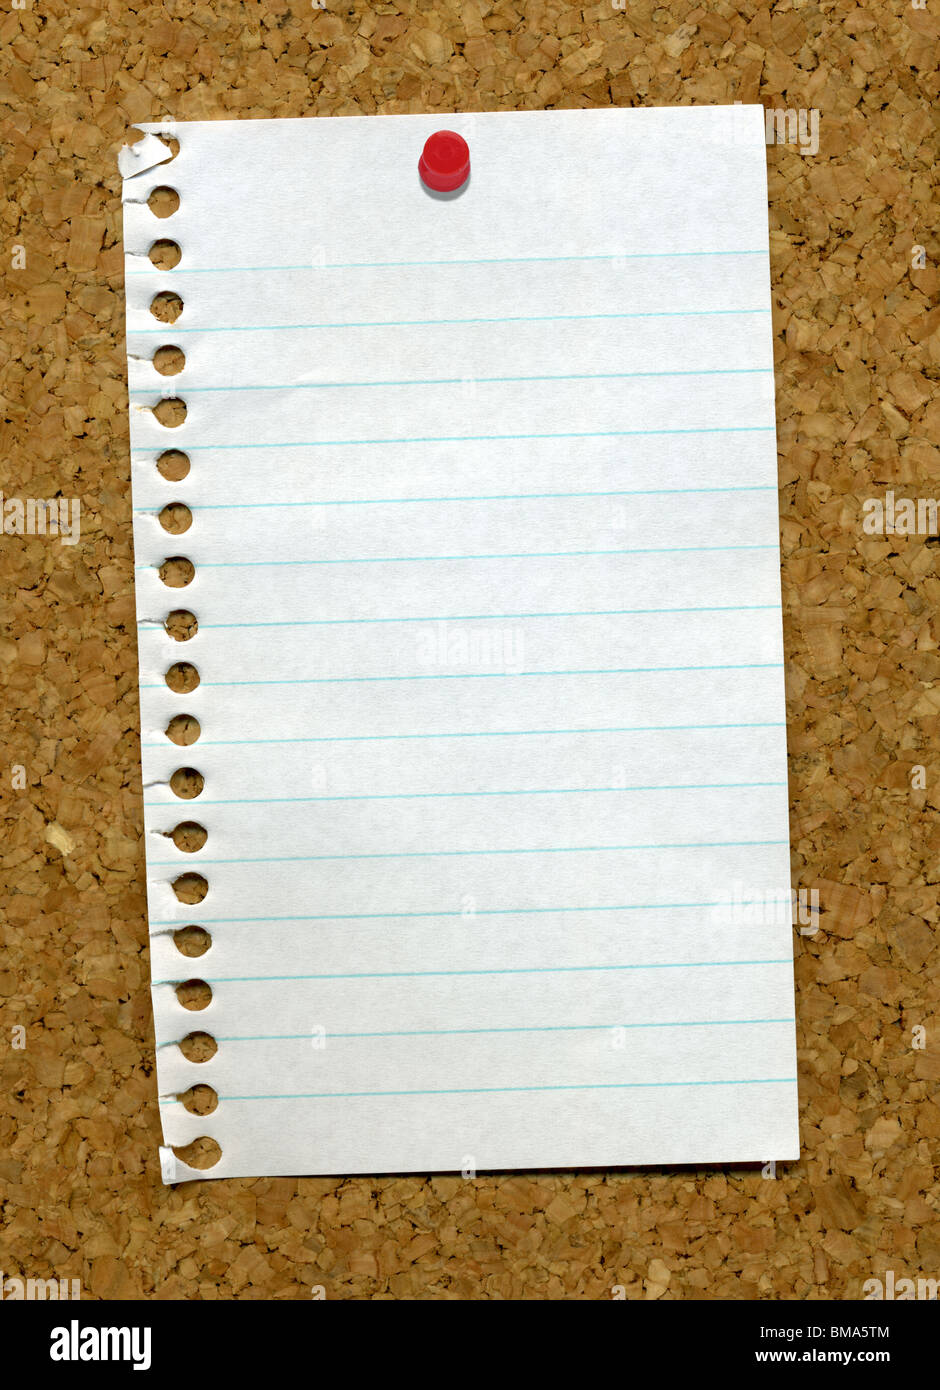 A Small Blank Lined Page From A Notepad Stuck To A Cork Noticeboard  Blank Lined Page